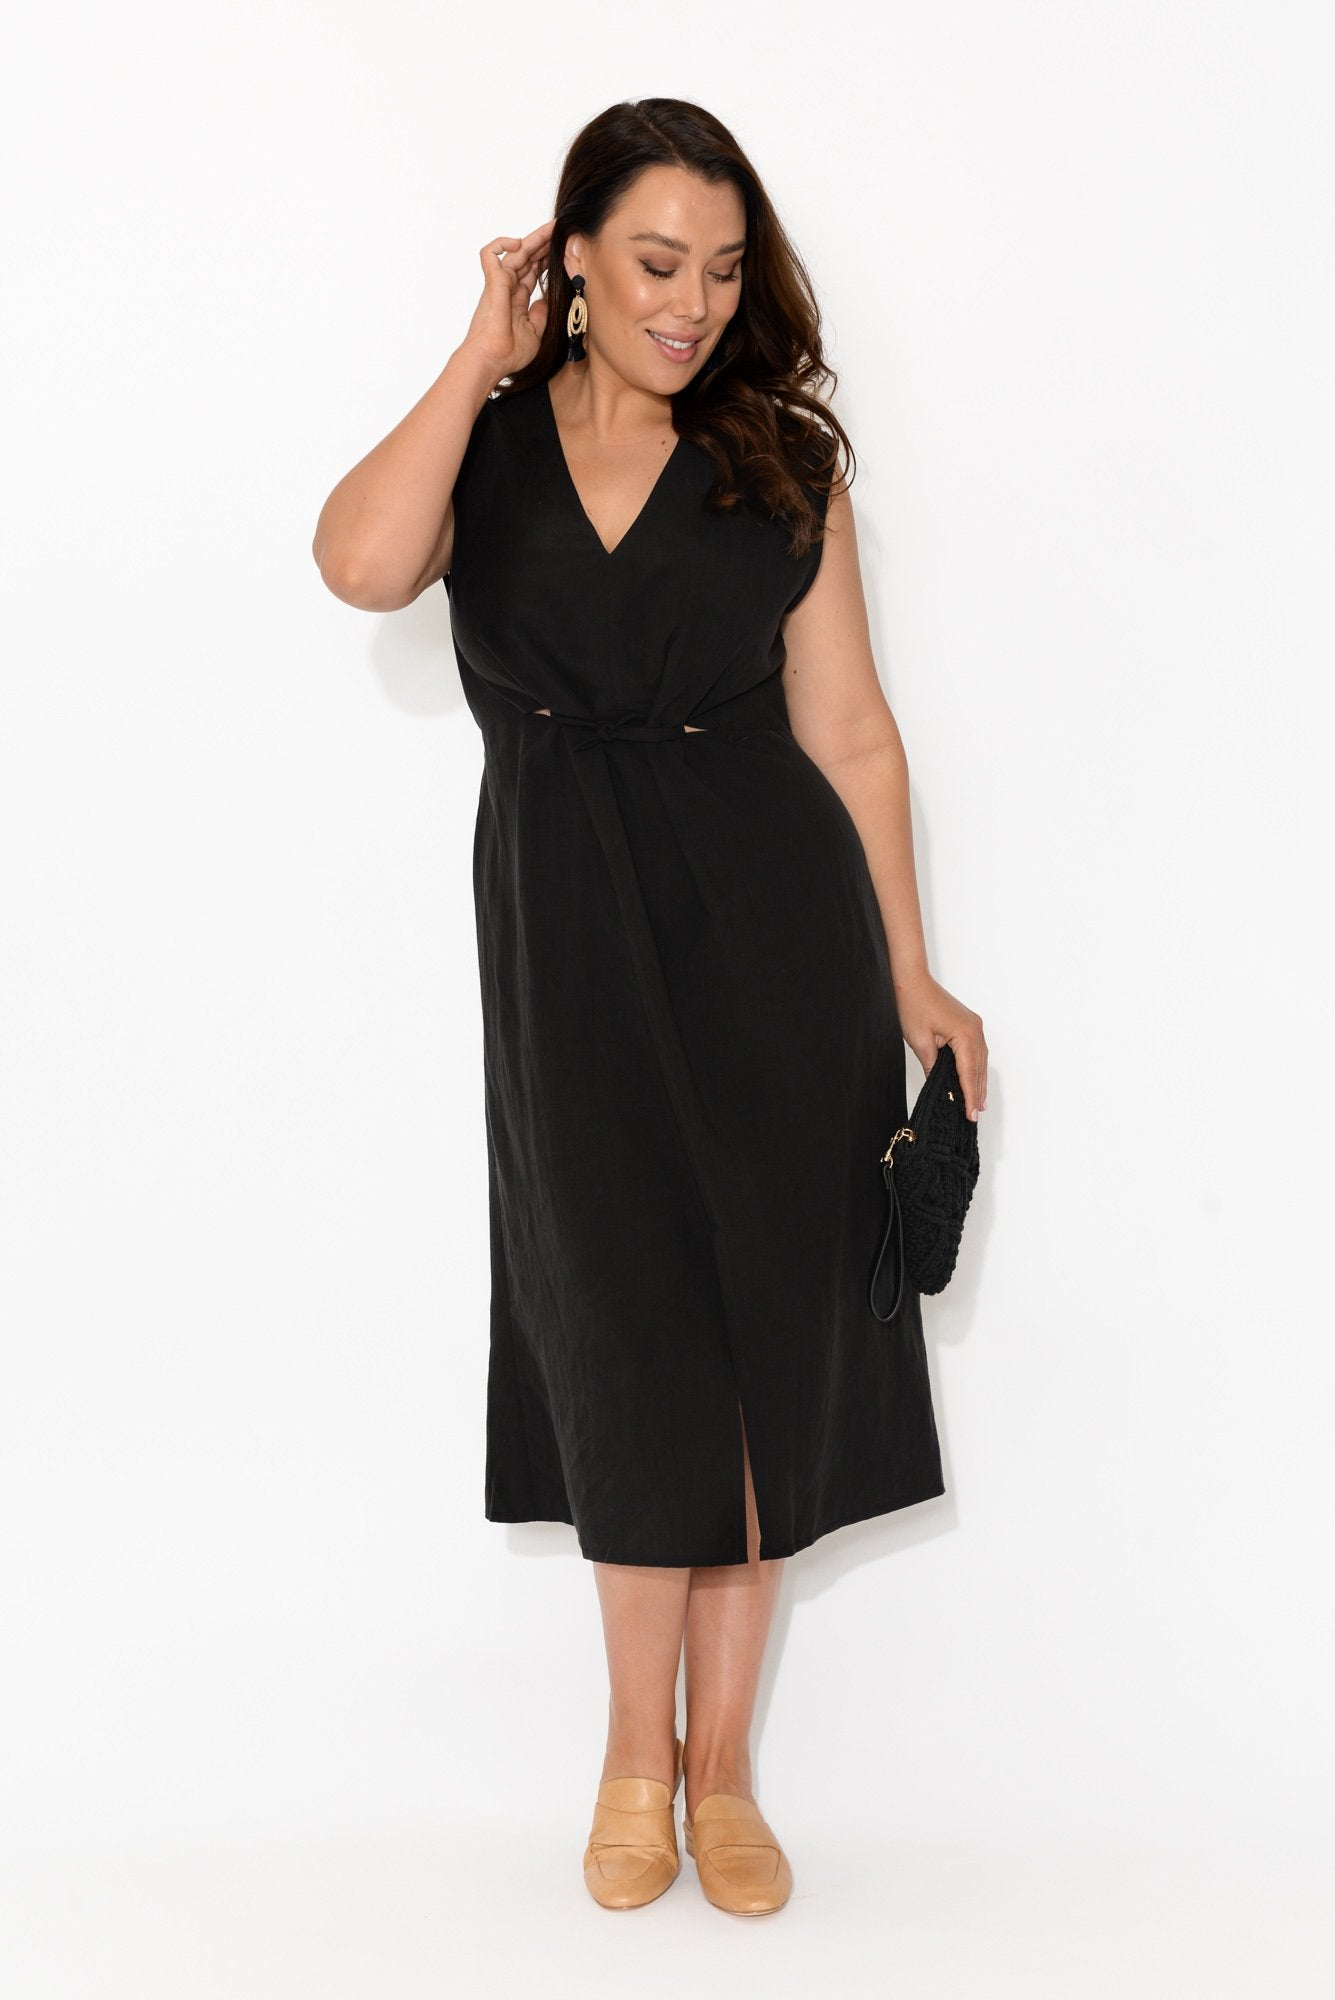 Luna Black Tie Midi Dress